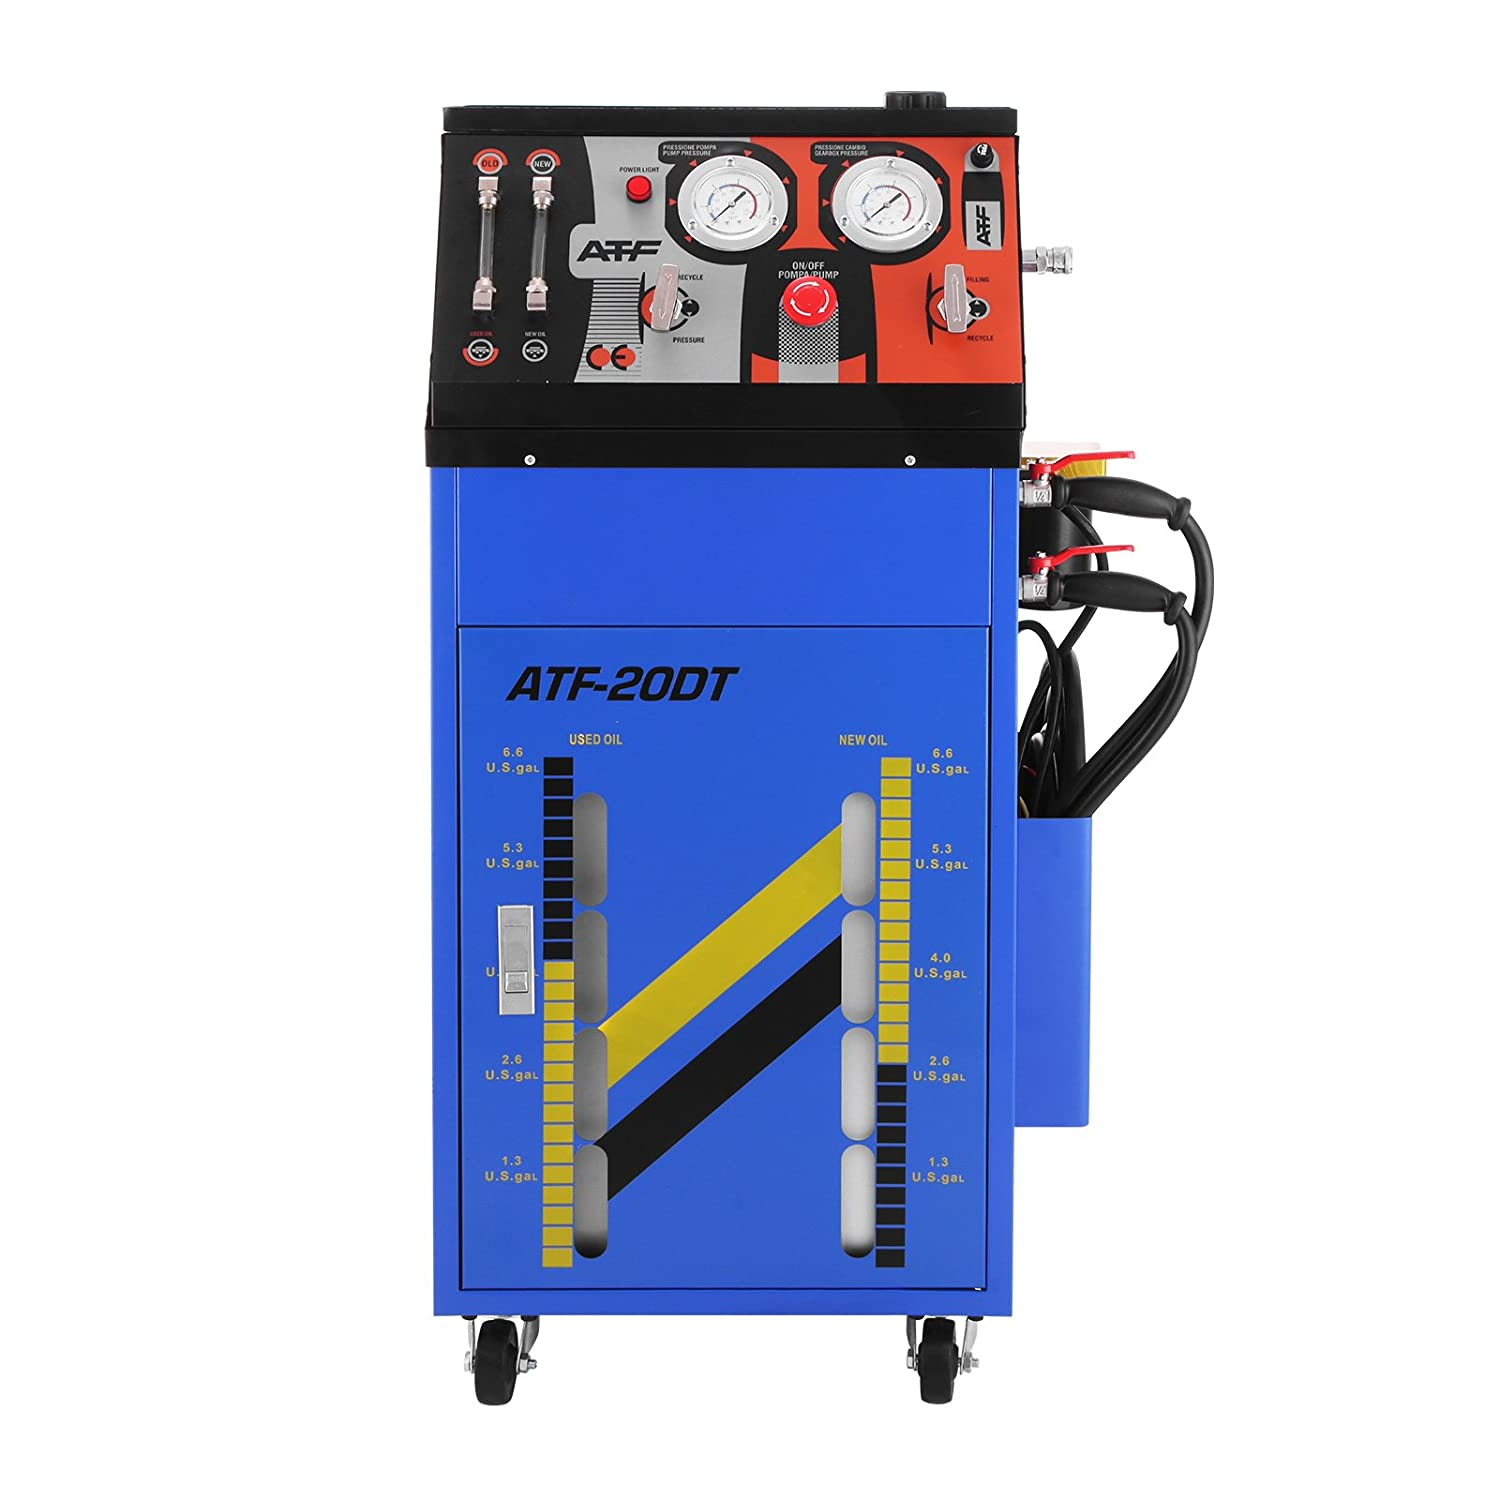 Mophorn Flush Machine DC12V 0-60PSI Automatic Transmission Fluid Exchanger Heavy Duty Transmission Flush Machine for Small Gasoline Motor Car and Diesel ...